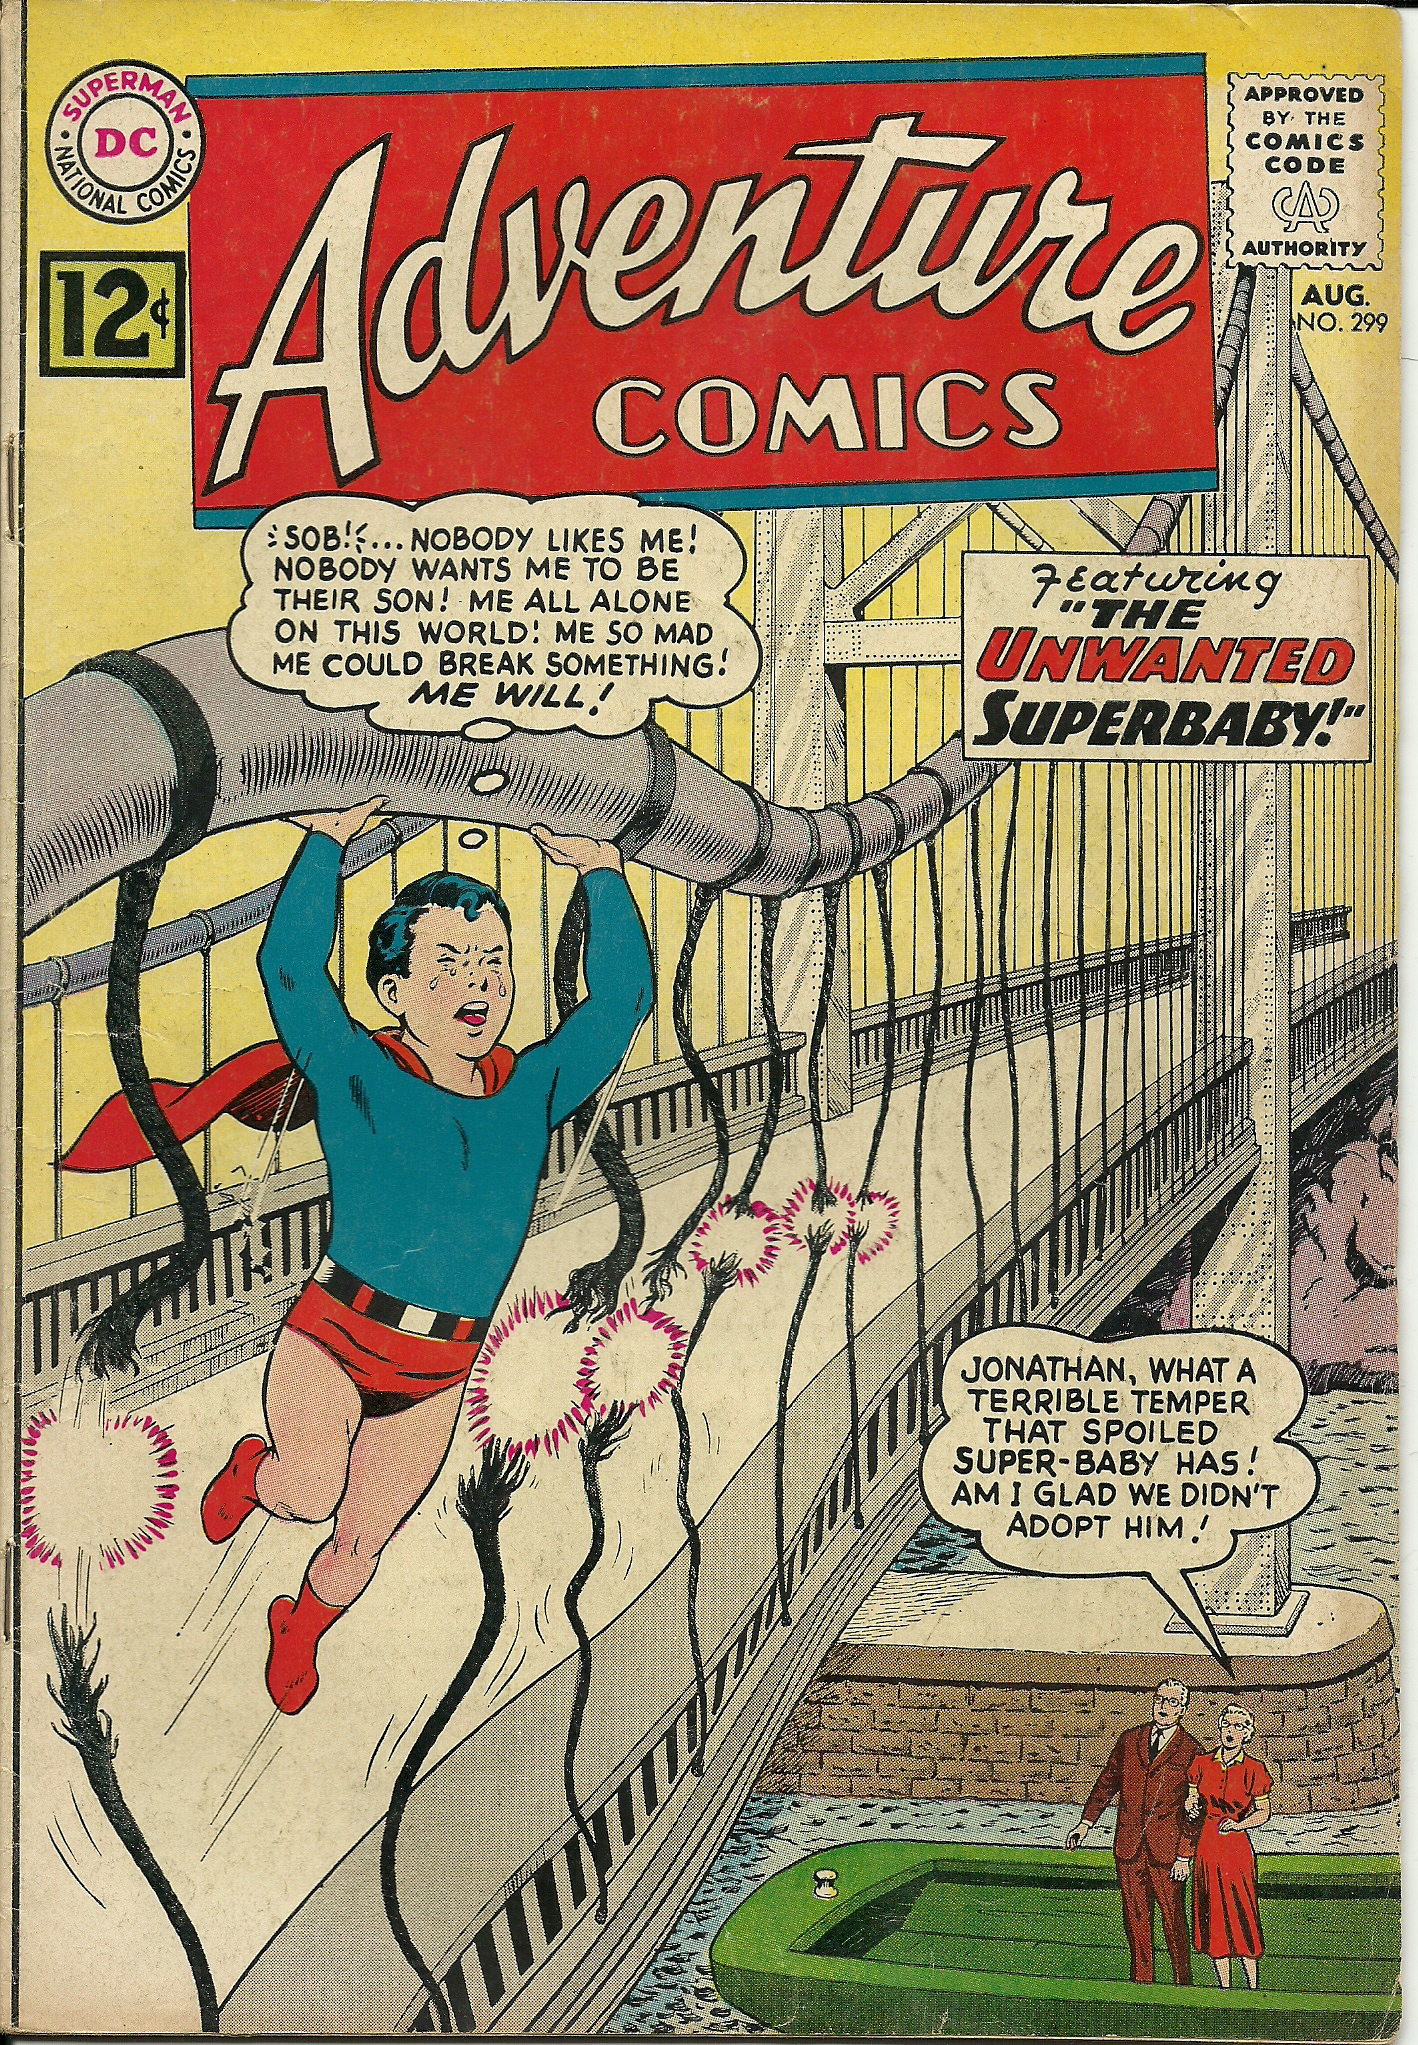 Adventure Comics–No. 299–August 1962. In good condition. All pages ...